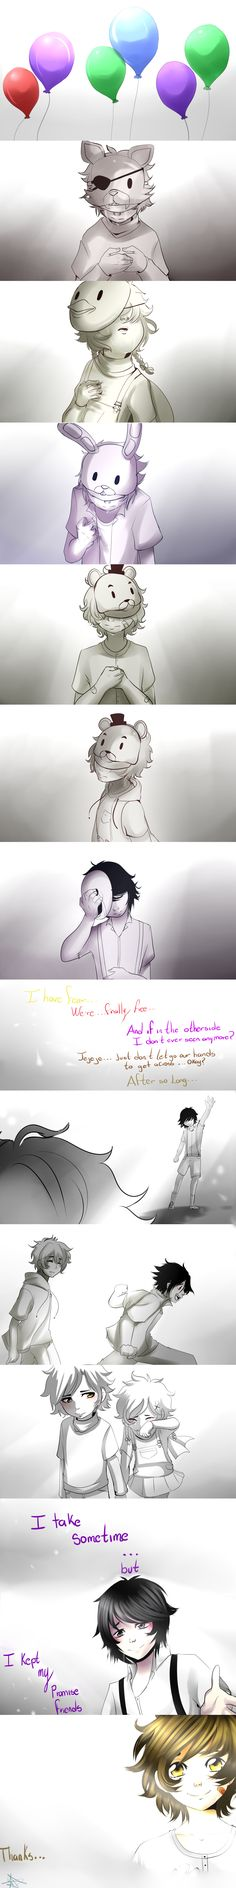 This has got to be the most beautiful representation of the lost children ever.  This is amazing.